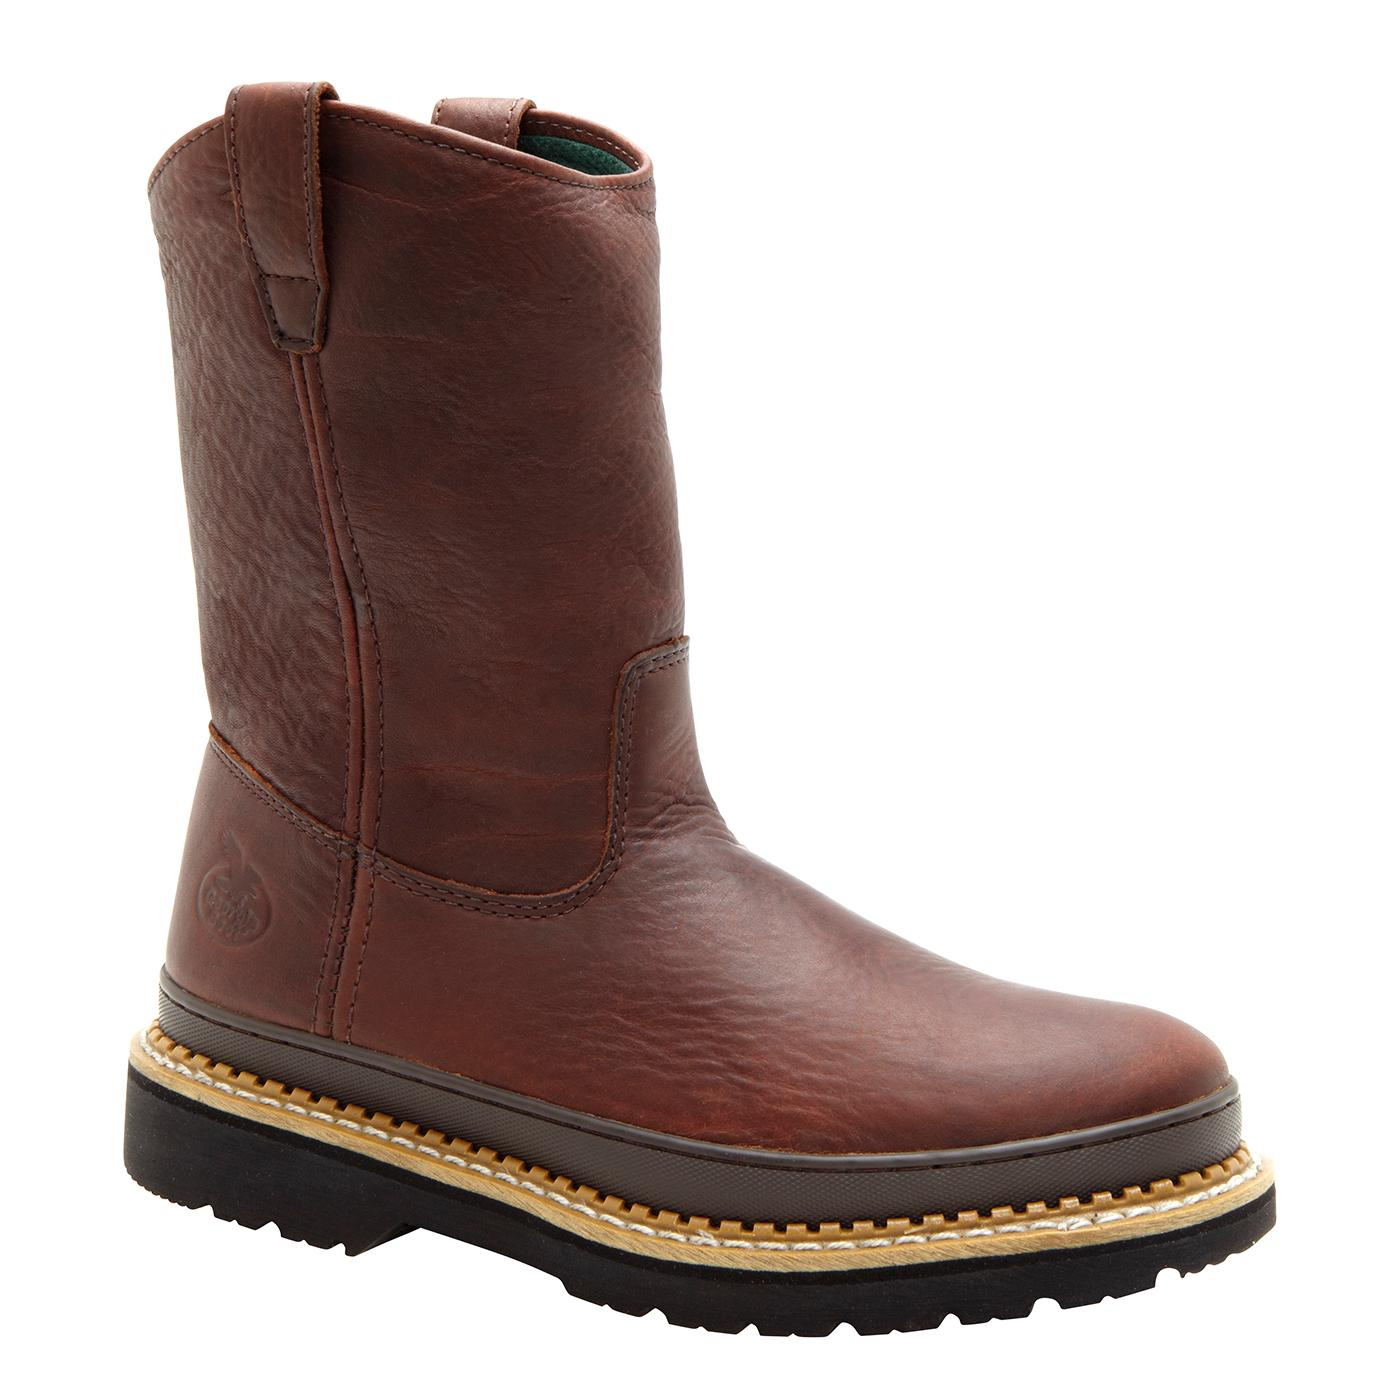 9 Quot Women S Wellington Pull On Work Boot Georgia Boot G3402